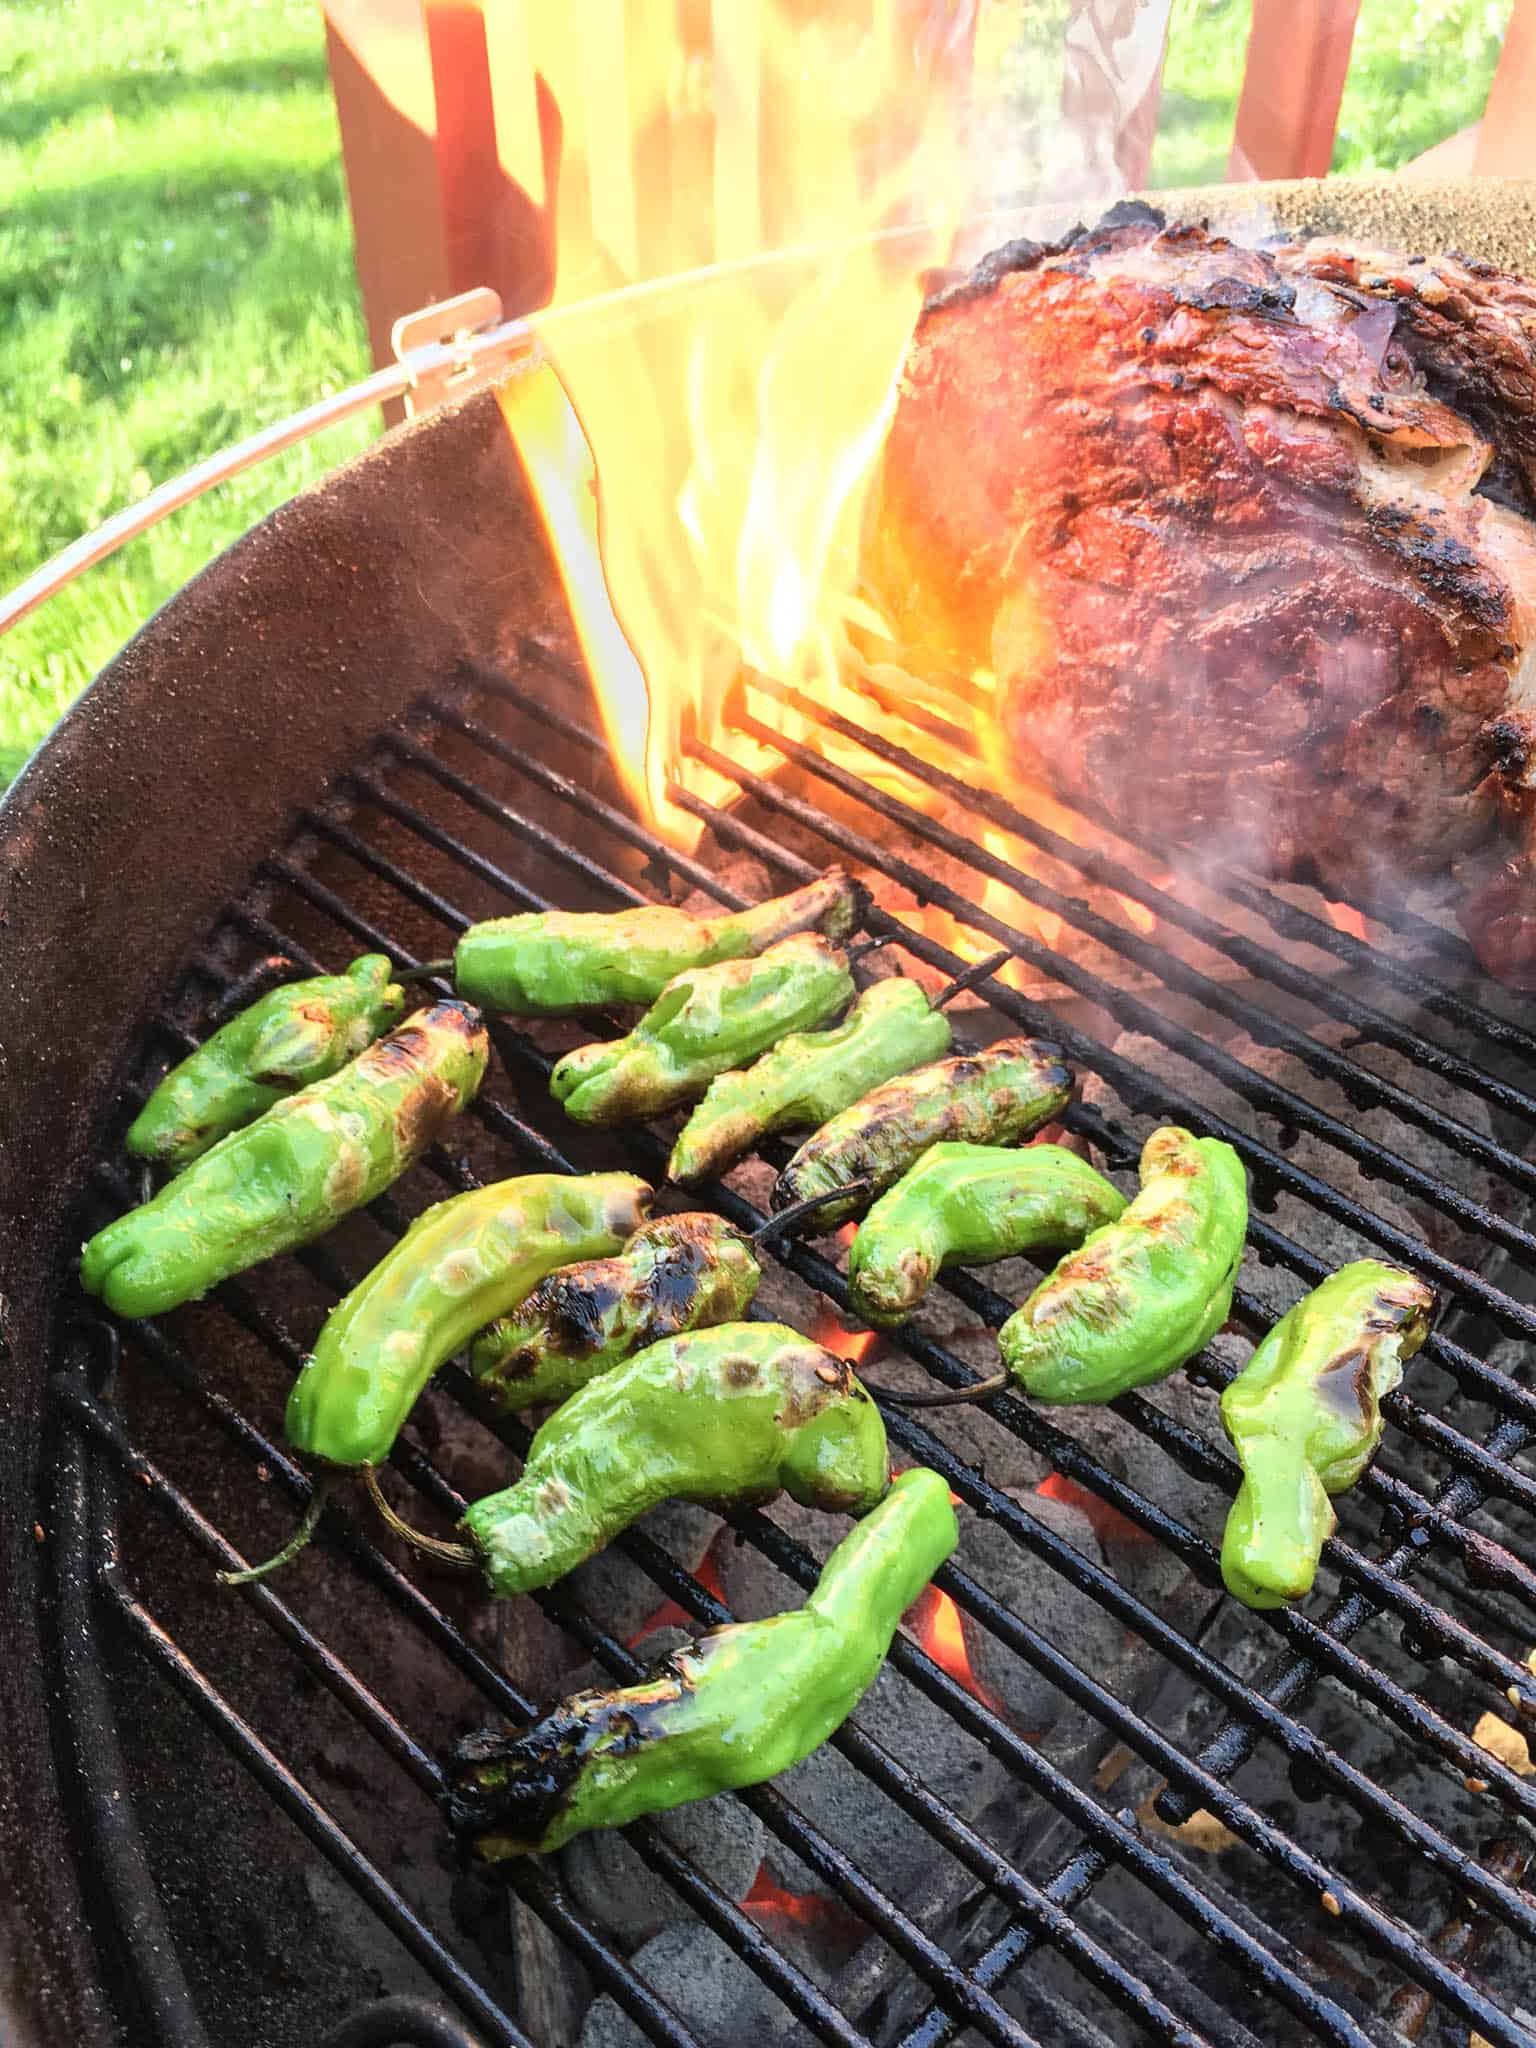 Grilled Shishito Peppers - DadCooksDinner